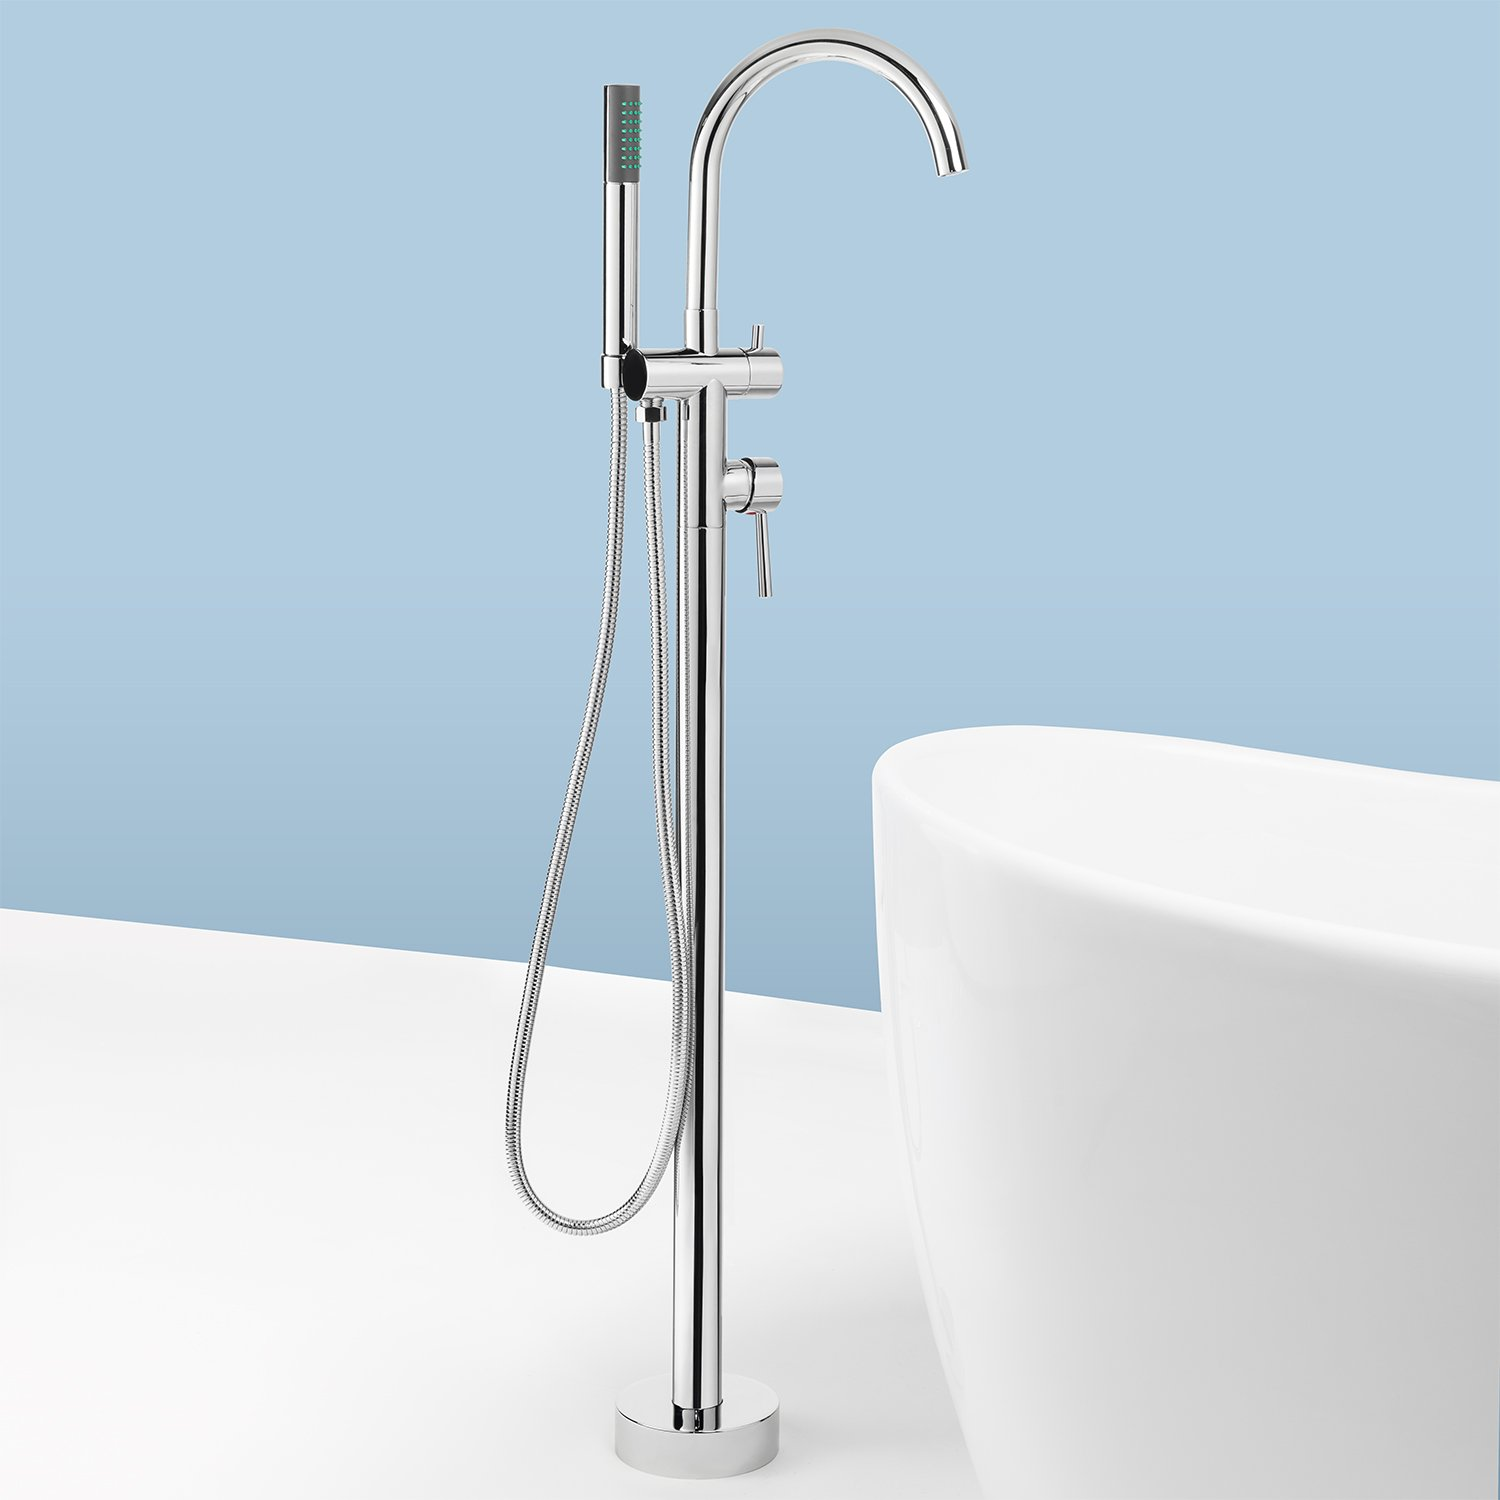 l bronze rubbed floor and gooseneck floors bathroom oil mount faucet hand with freestanding simoni tub filler shower